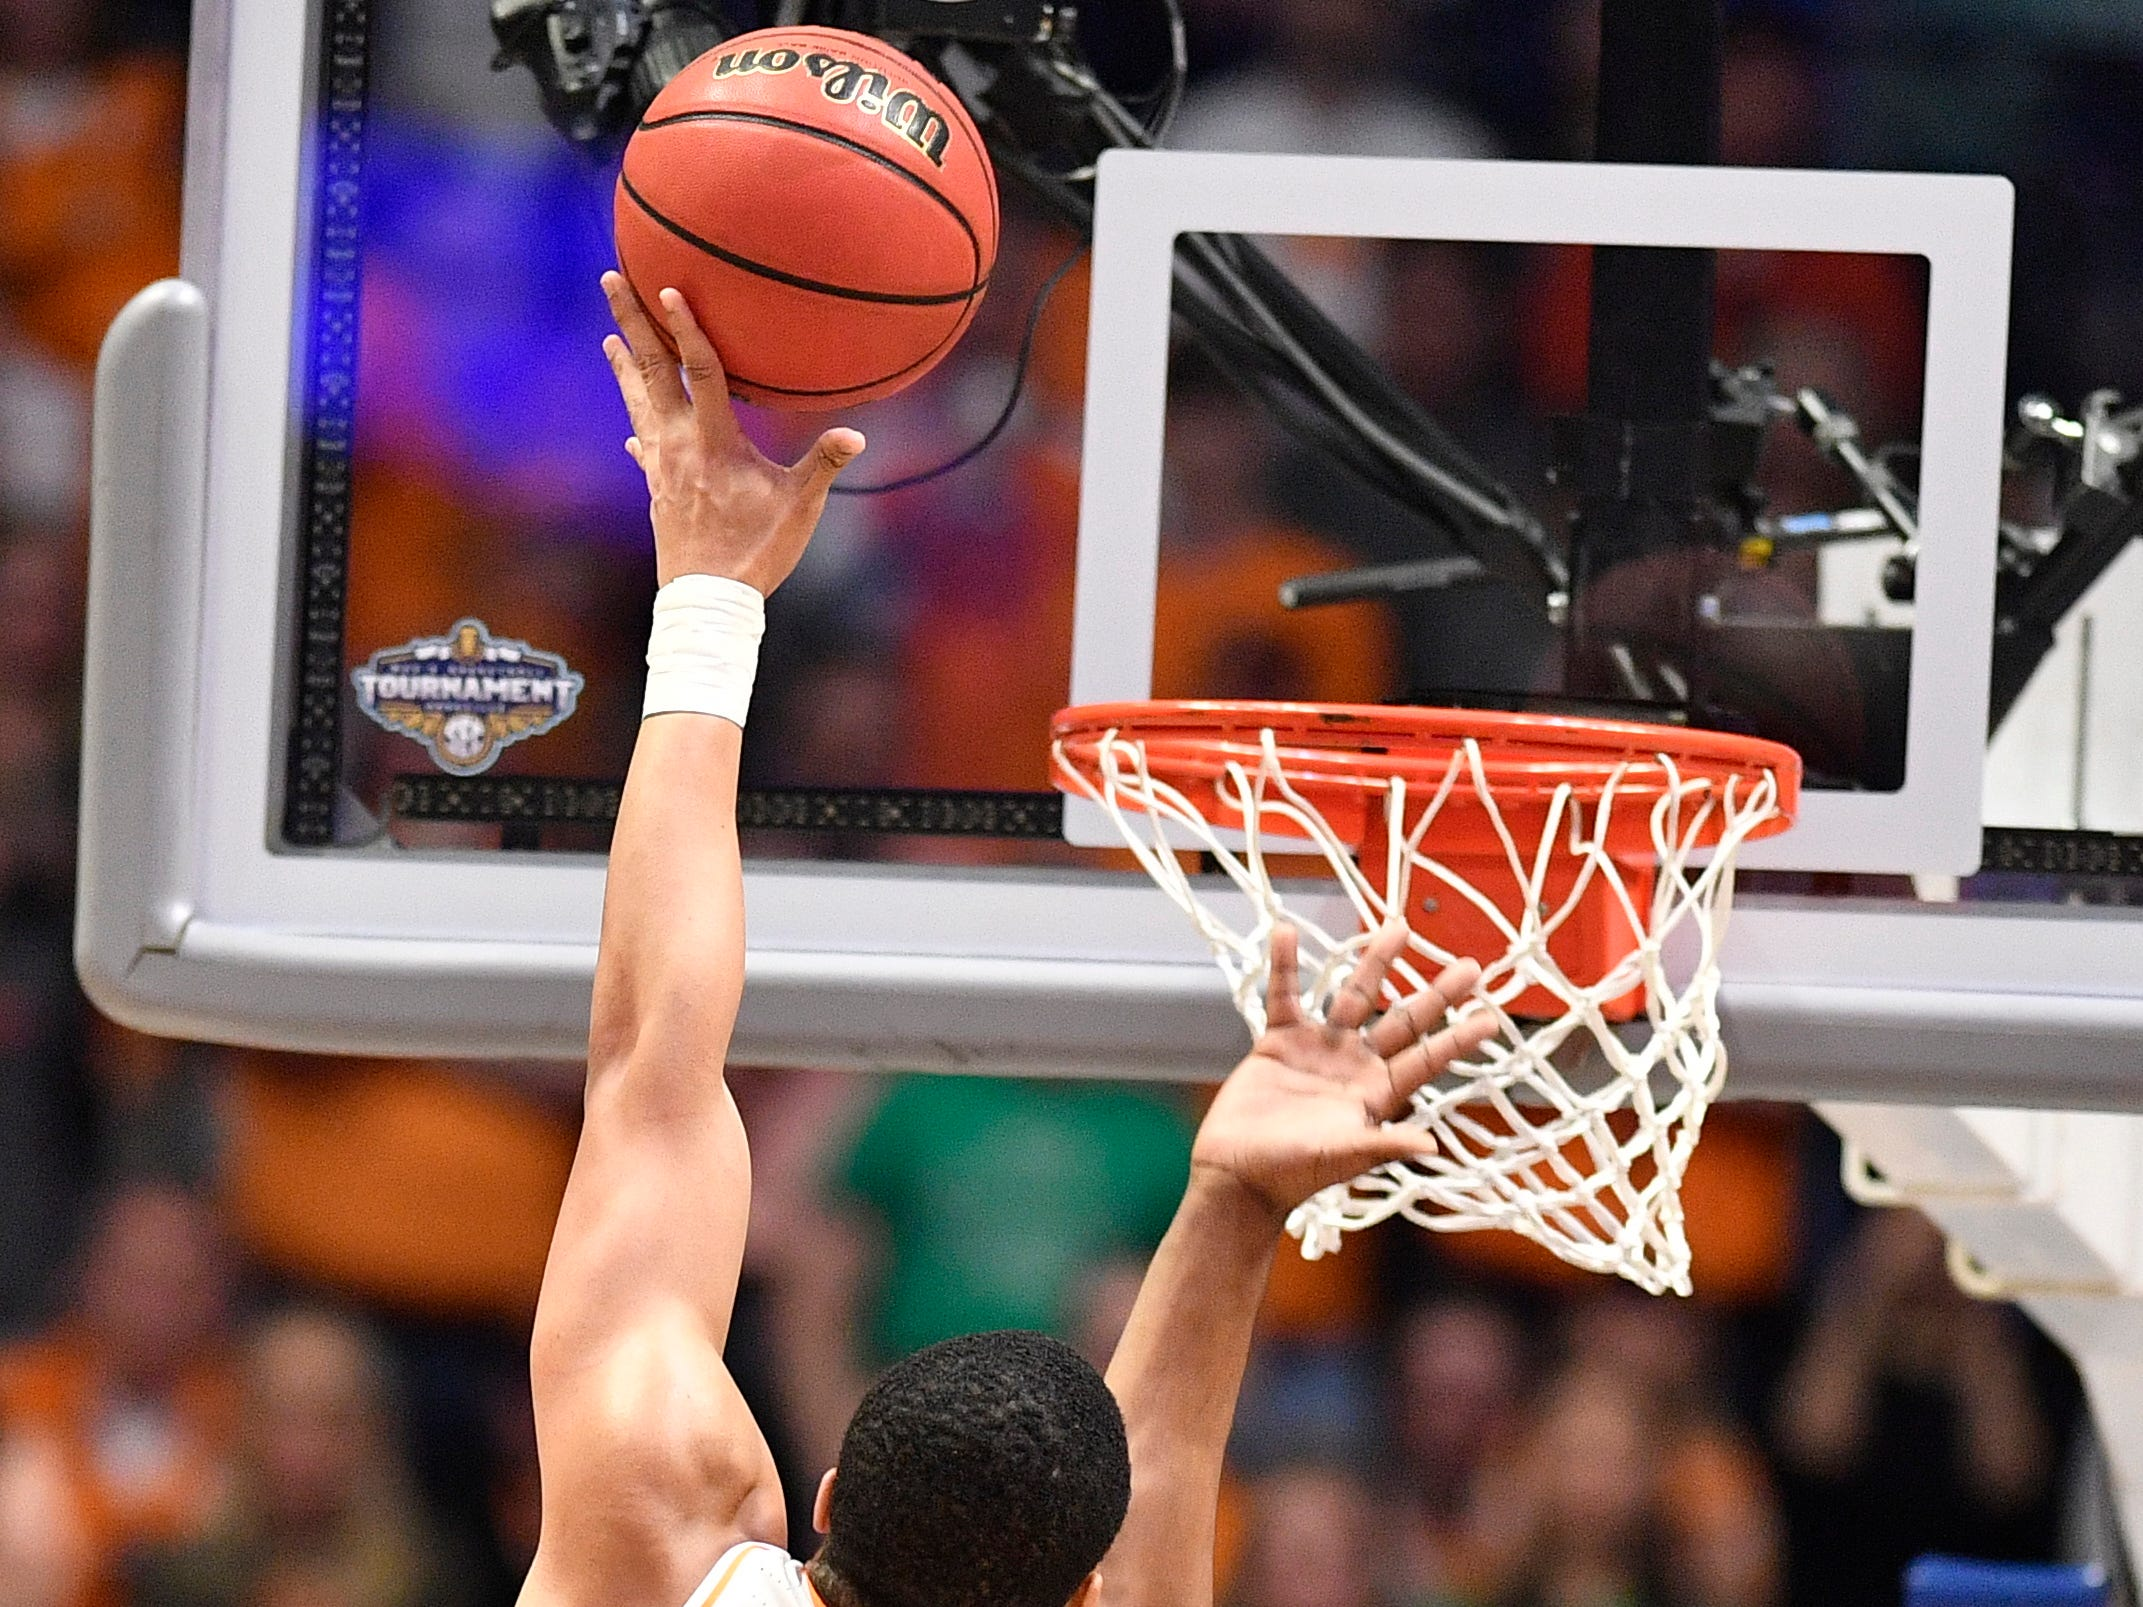 Tennessee forward Grant Williams (2) shoots over Auburn forward Horace Spencer (0) during the second half of the SEC Men's Basketball Tournament championship game at Bridgestone Arena in Nashville, Tenn., Sunday, March 17, 2019.